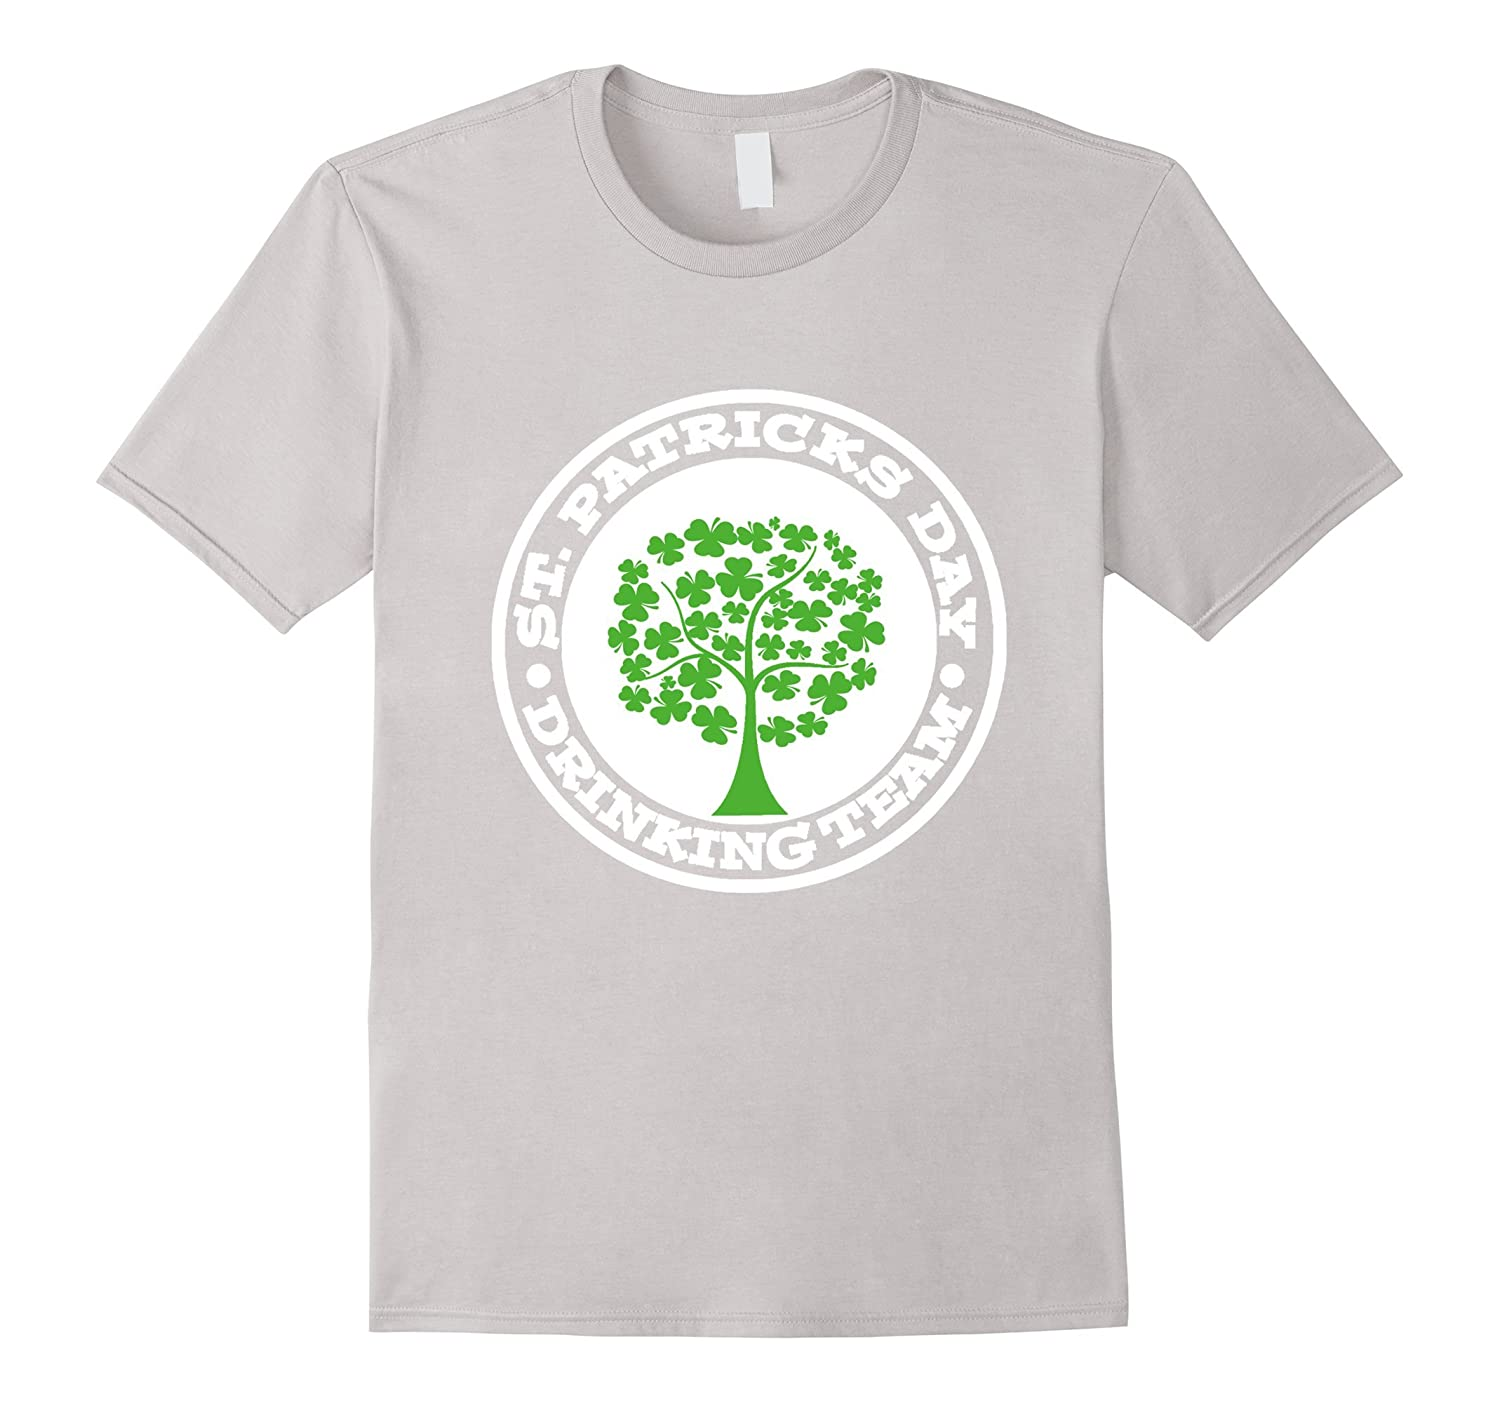 Drinking group for saint patricks day t-shirt-TD